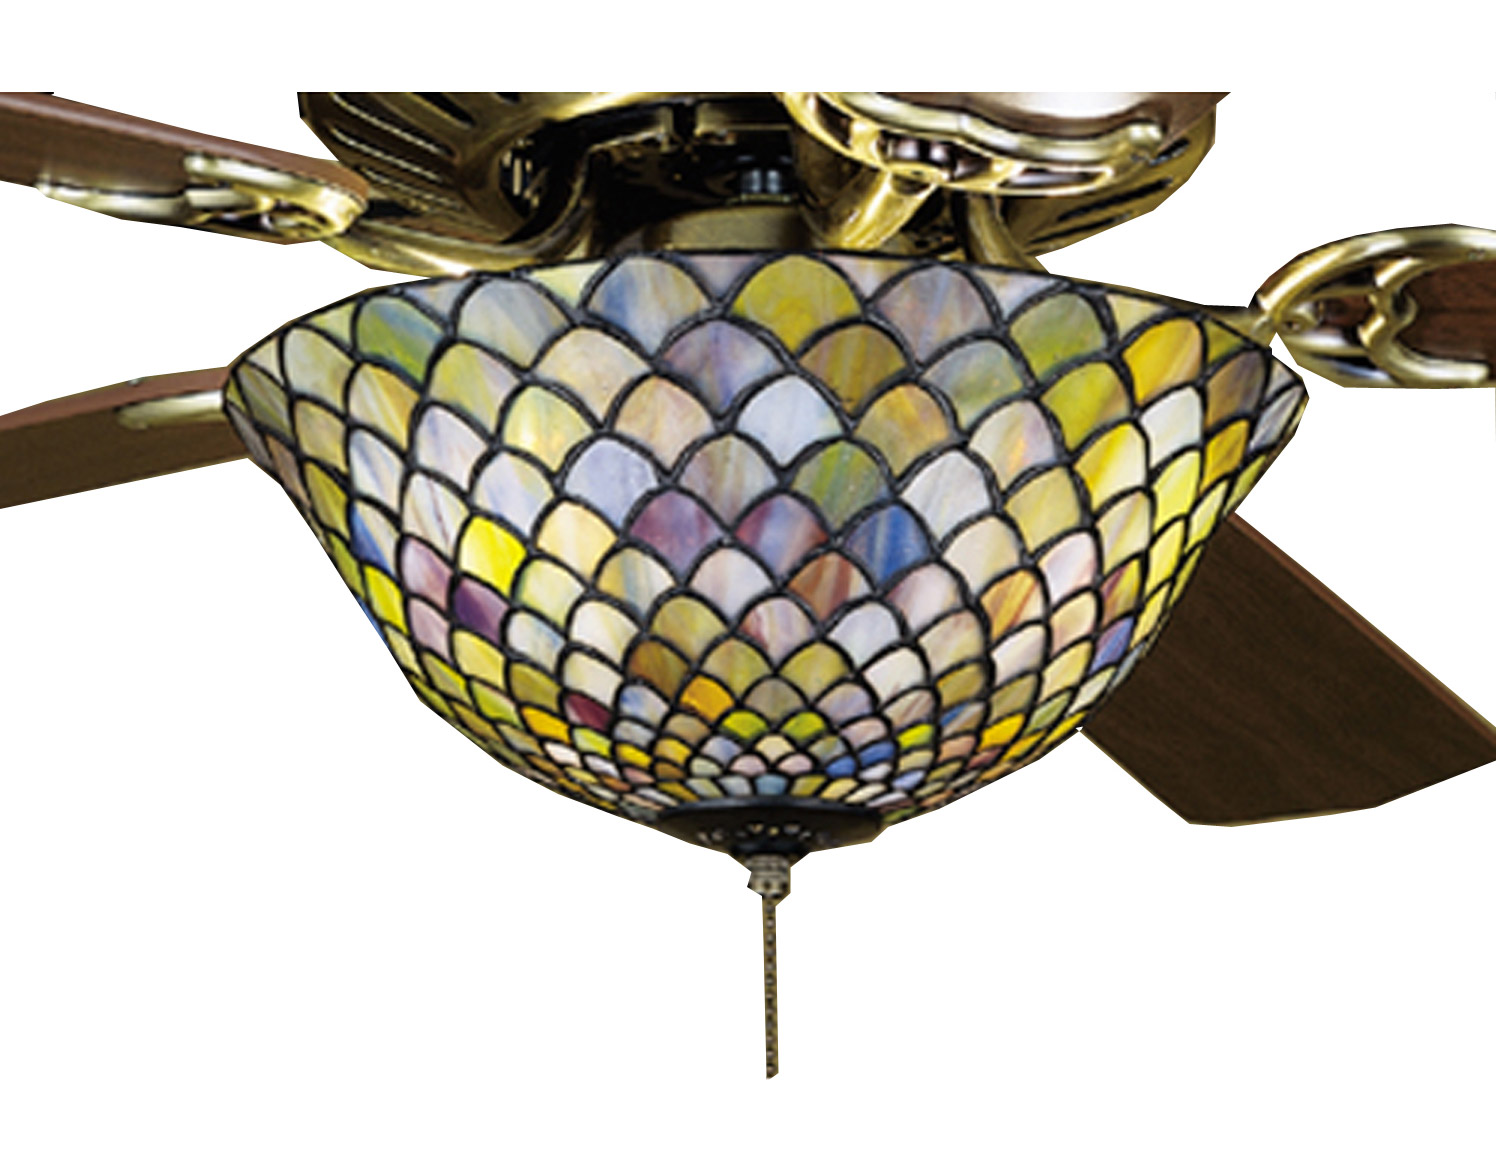 Meyda 27451 Tiffany Fishscale Fan Light Fixture